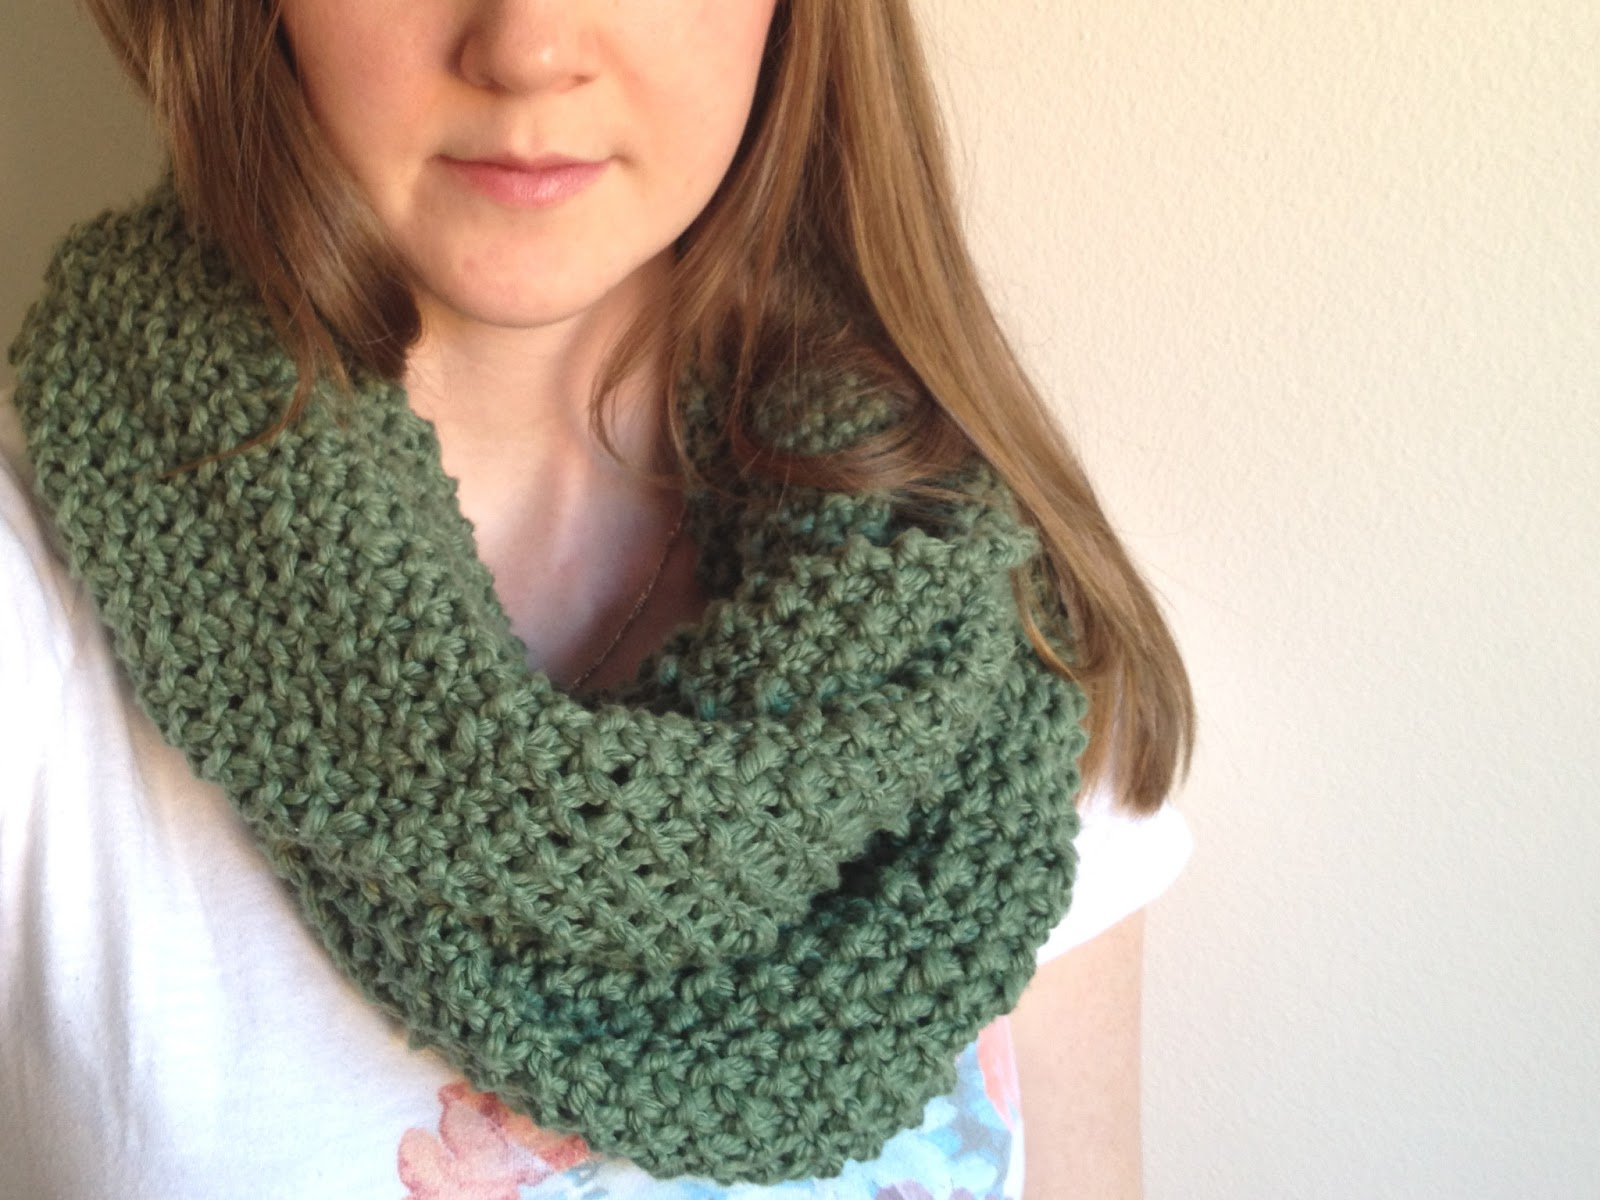 Knitting Pattern Infinity Scarf Straight Needles : tinselmint: FREE INFINITY SCARF PATTERN FOR BEGINNERS